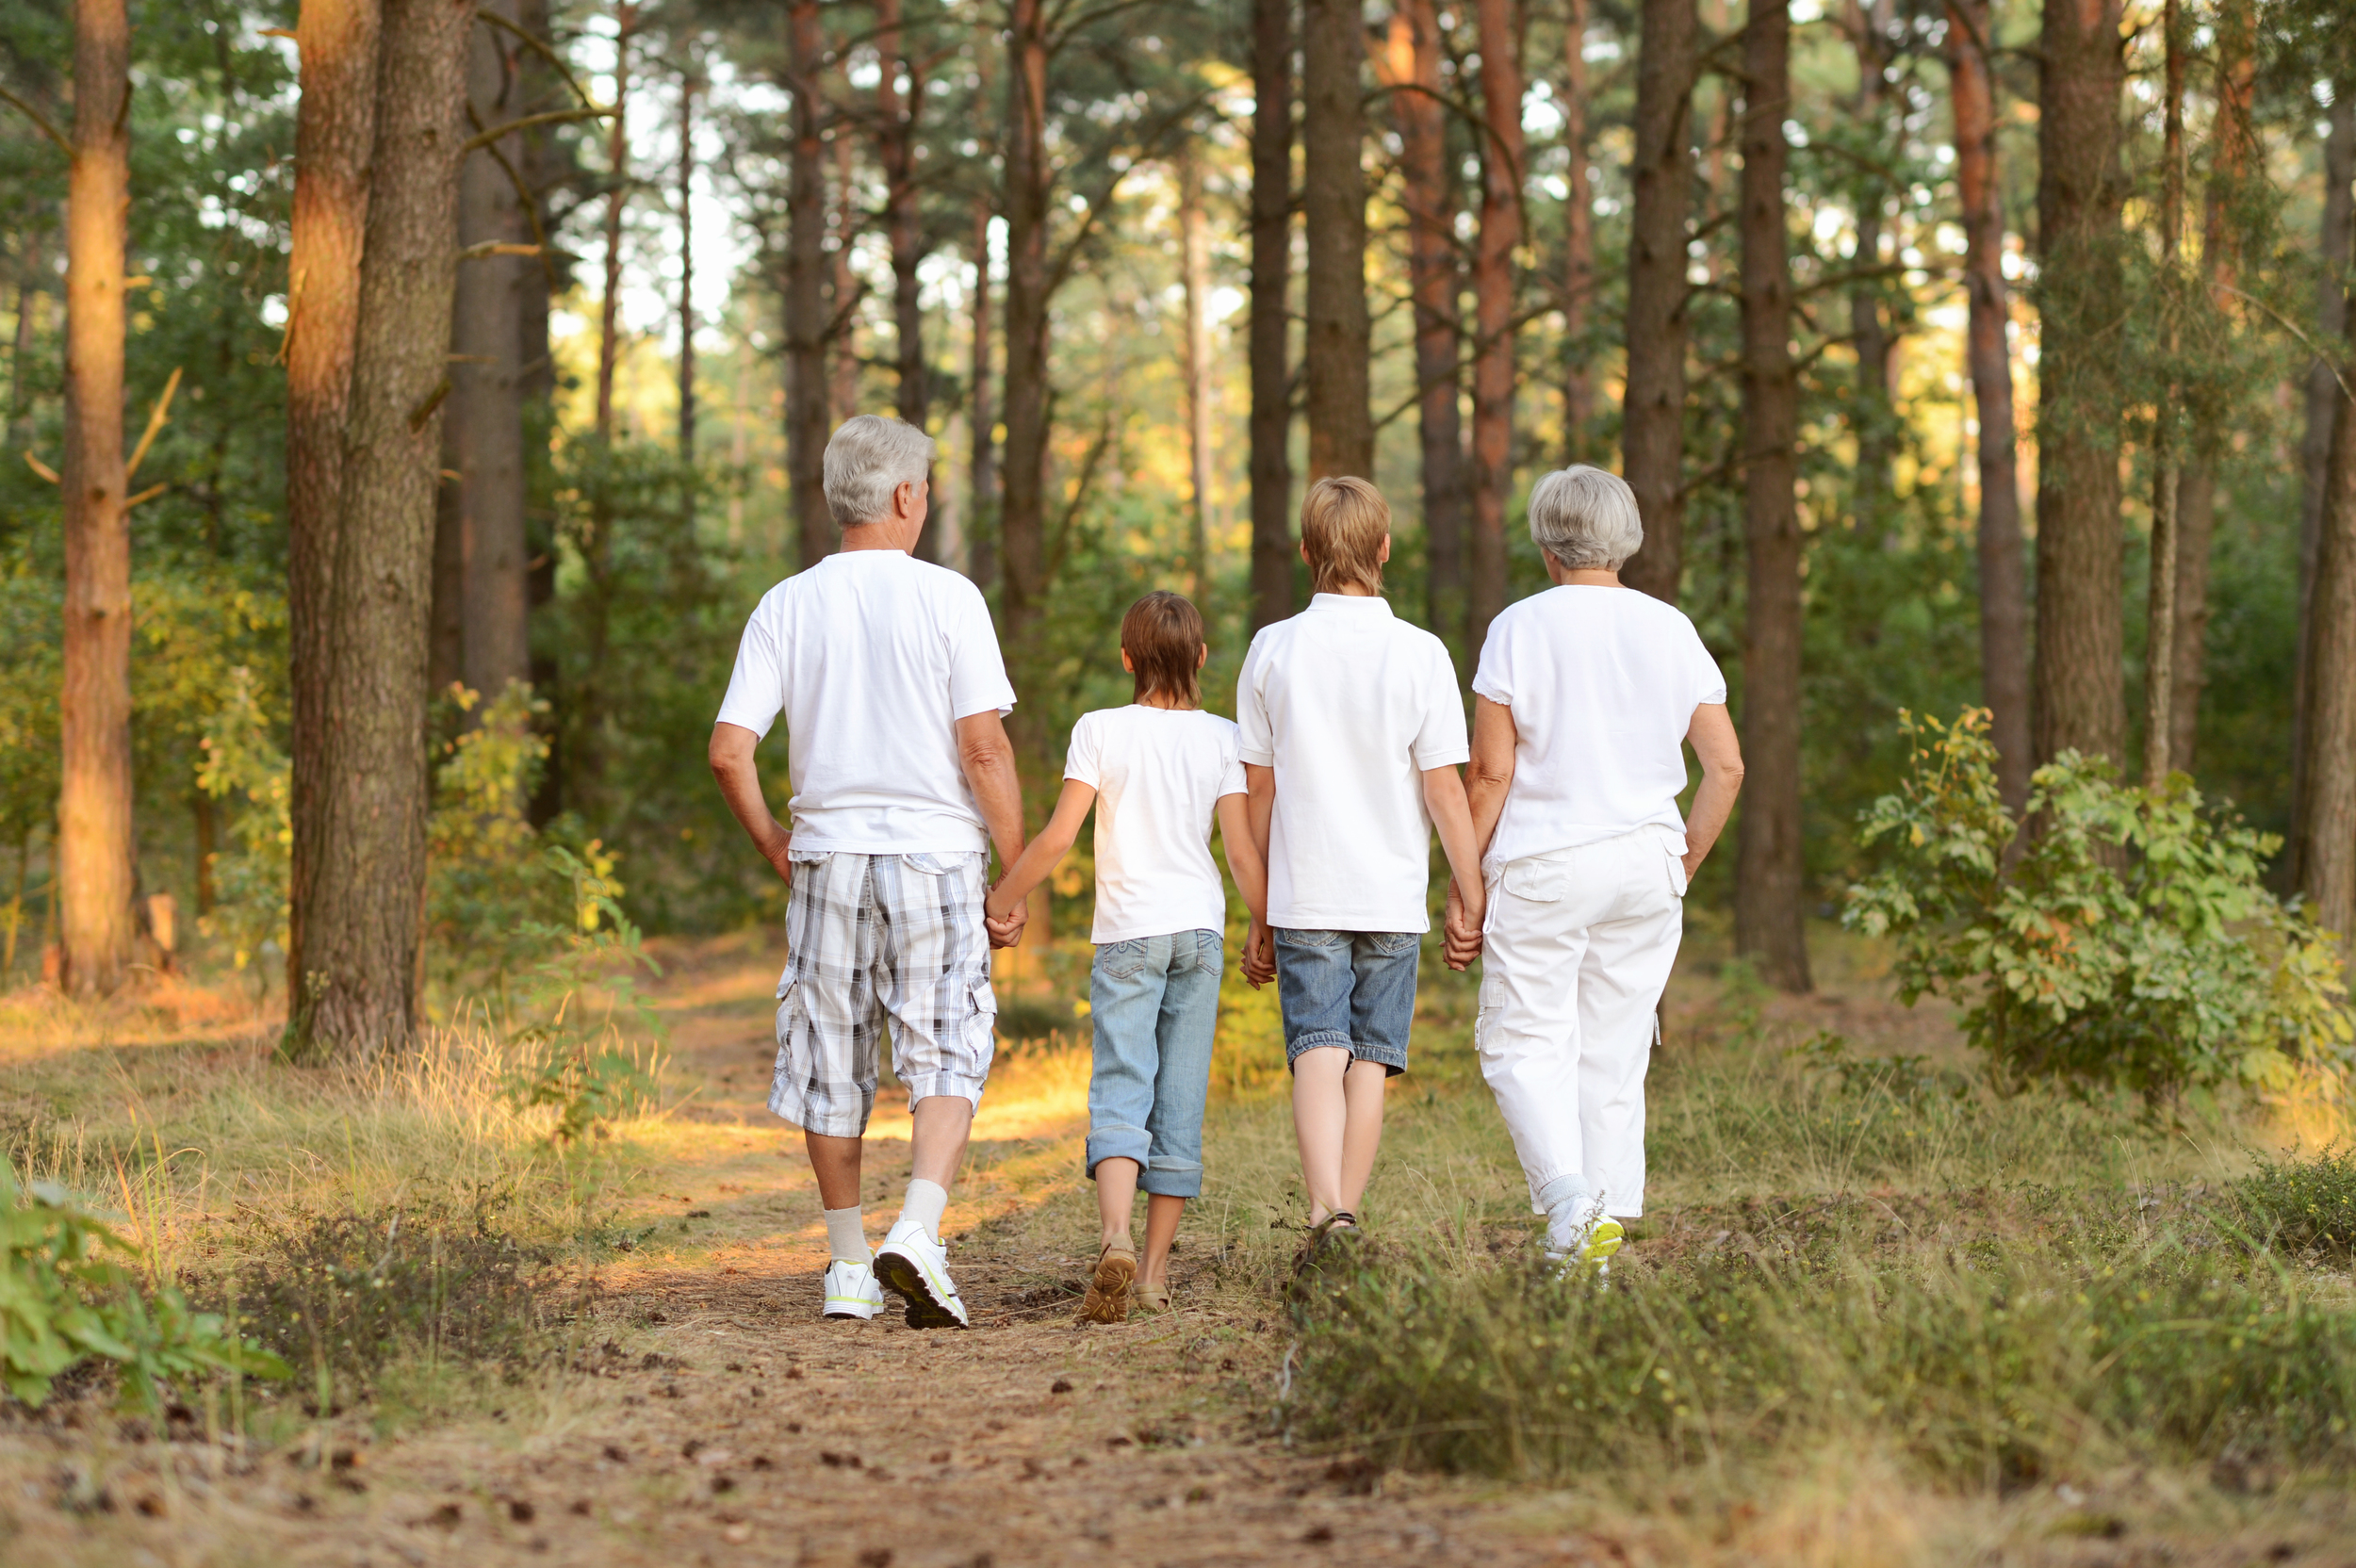 Planning for retirement and spending time with grandchildren. What will this look like for you?